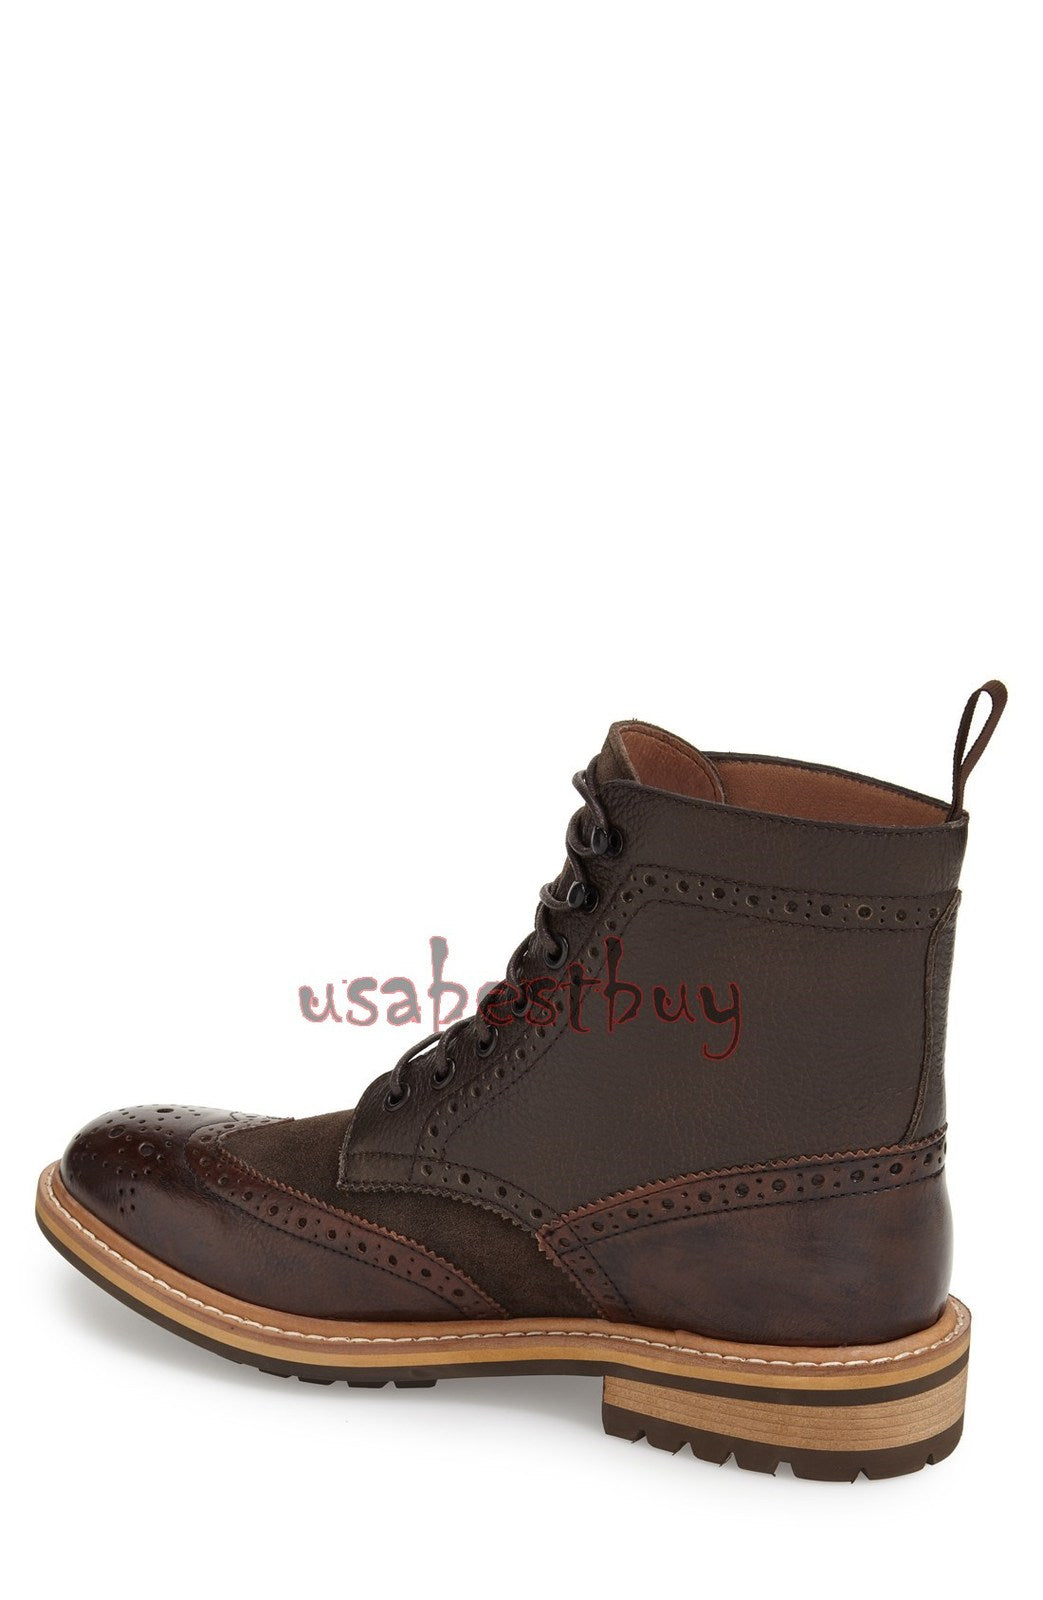 New Handmade Oxford Brogue Style Real Leather Ankle Boots, Men Stylish boots